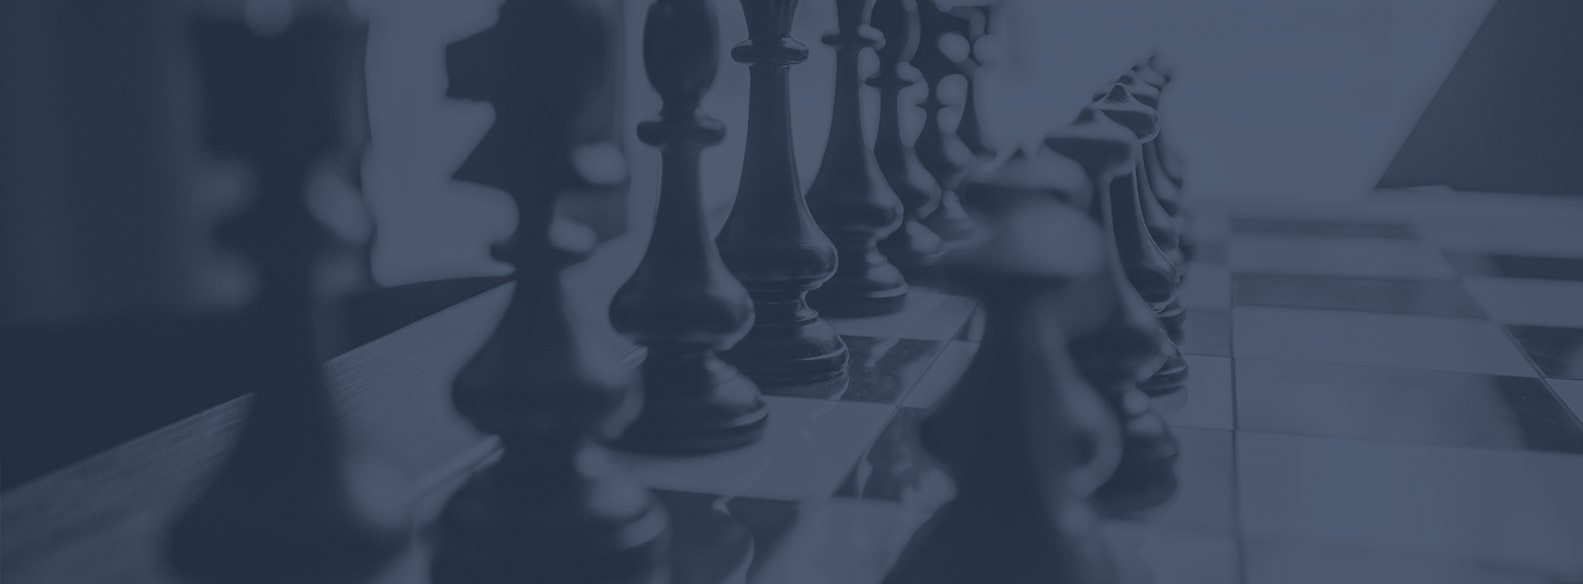 Chess pieces representing due diligence services maximizing your company reorganization strategy